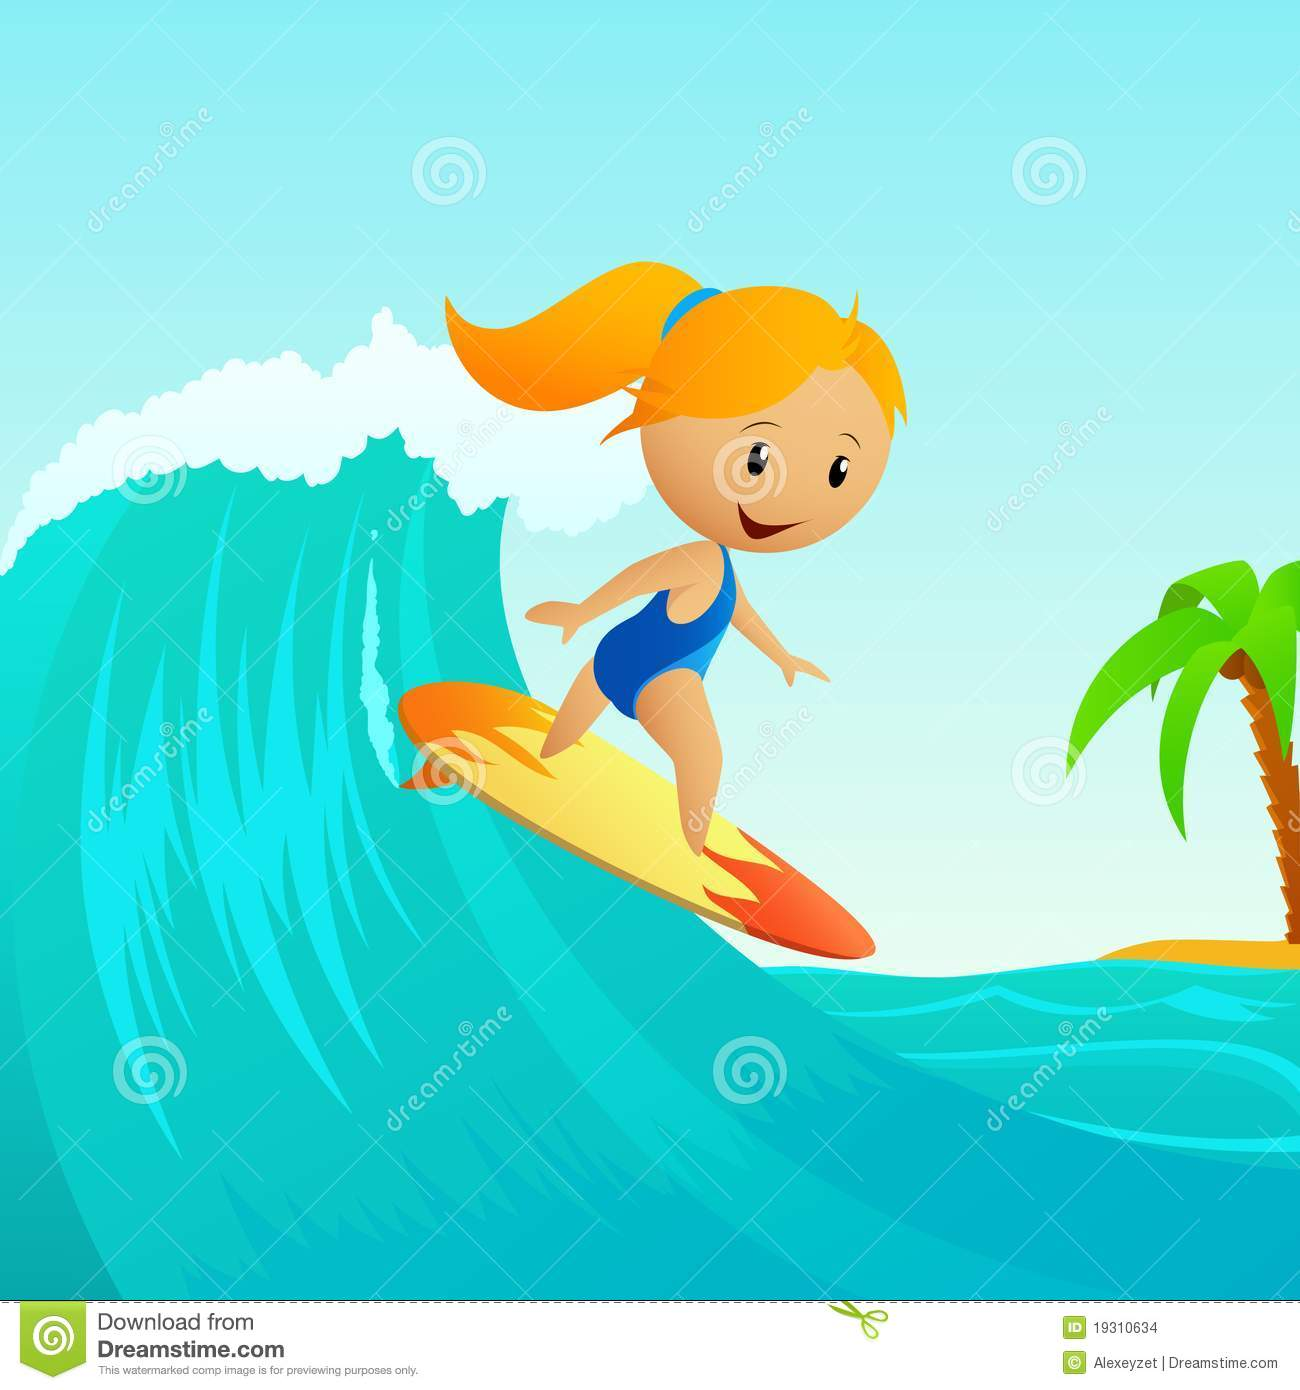 743 Surfing free clipart.